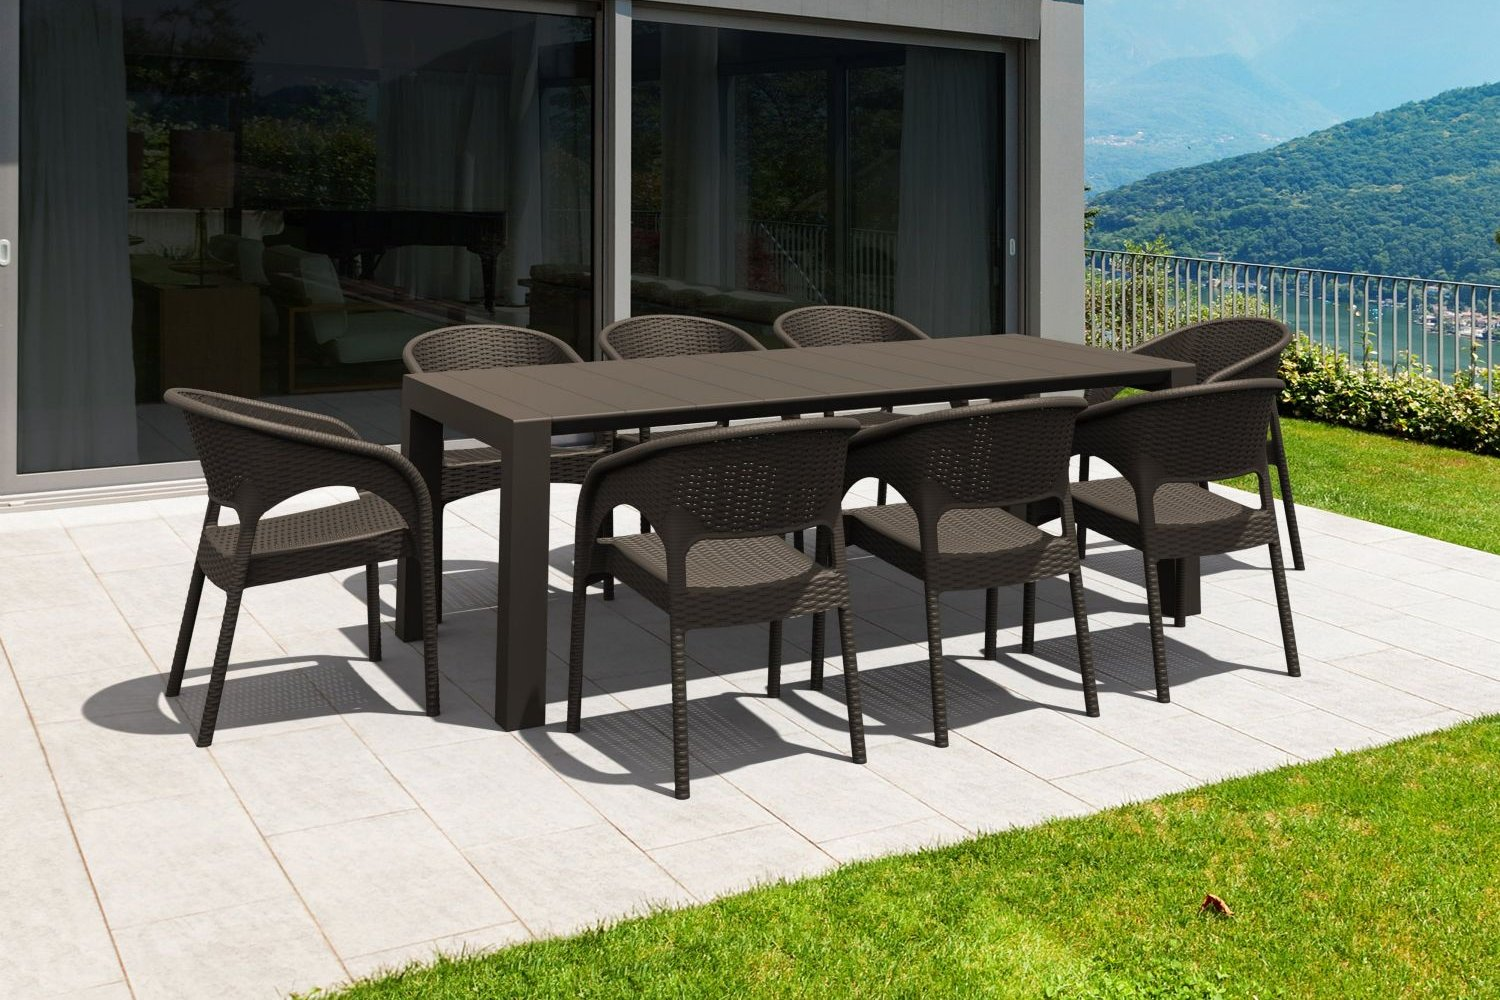 Panama Extendable Patio Dining Set 9 piece Brown ISP8083S-BR - 1